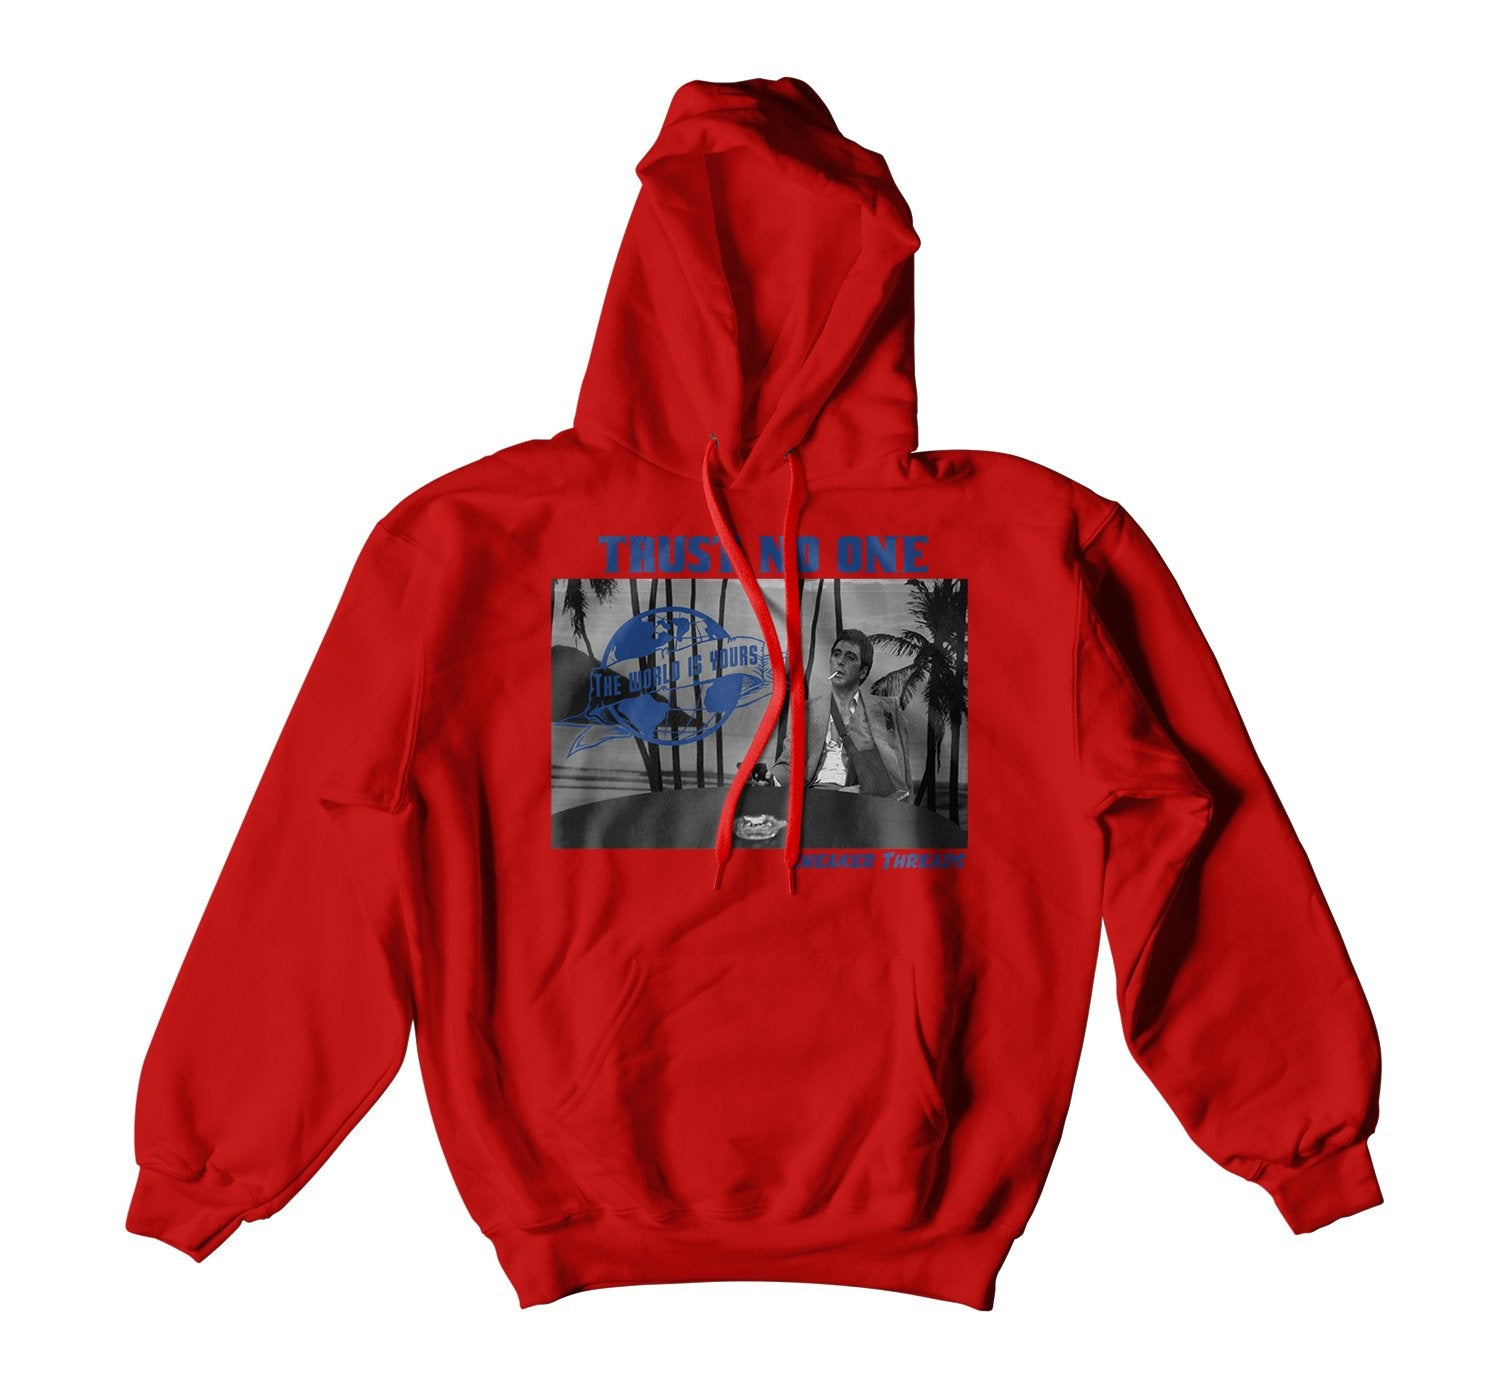 Scarface hoody to match for Jordan 4 Loyal Blue